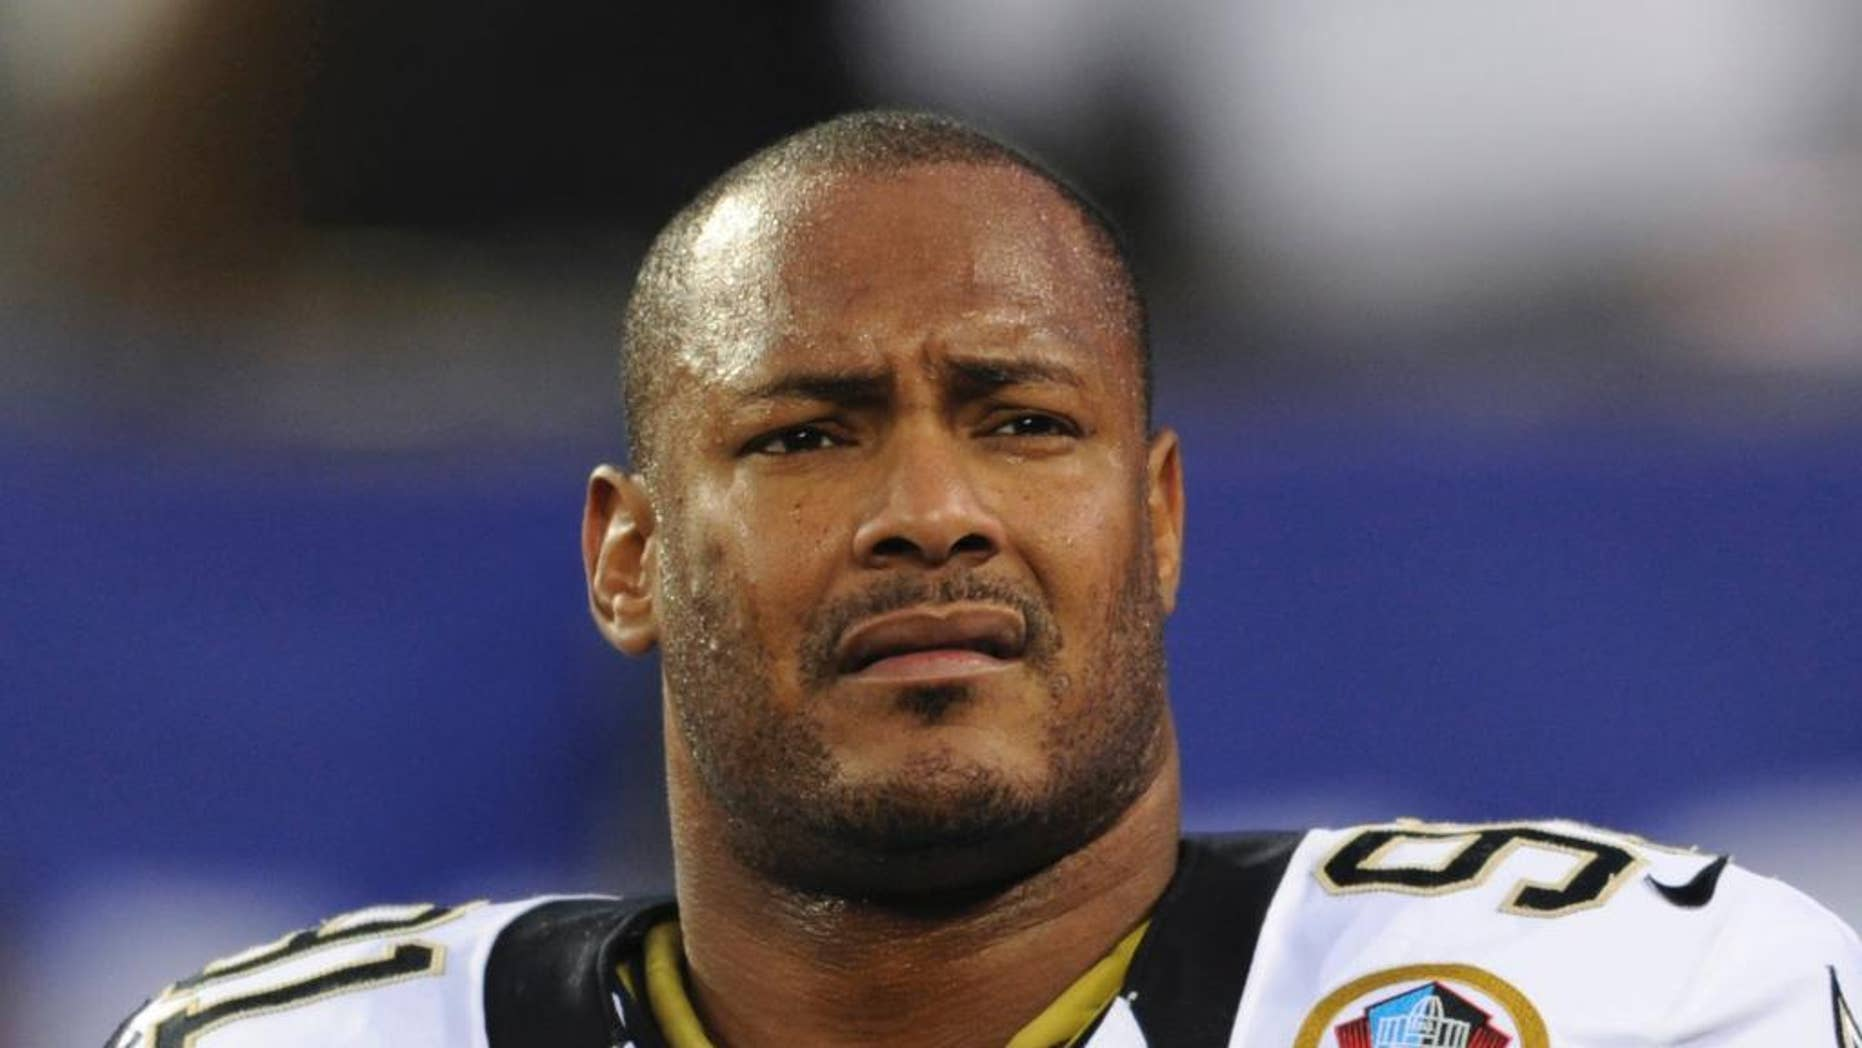 Dec. 9, 2012: New Orleans Saints defensive end Will Smith appears before an NFL football game against the New York Giants in East Rutherford, N.J.